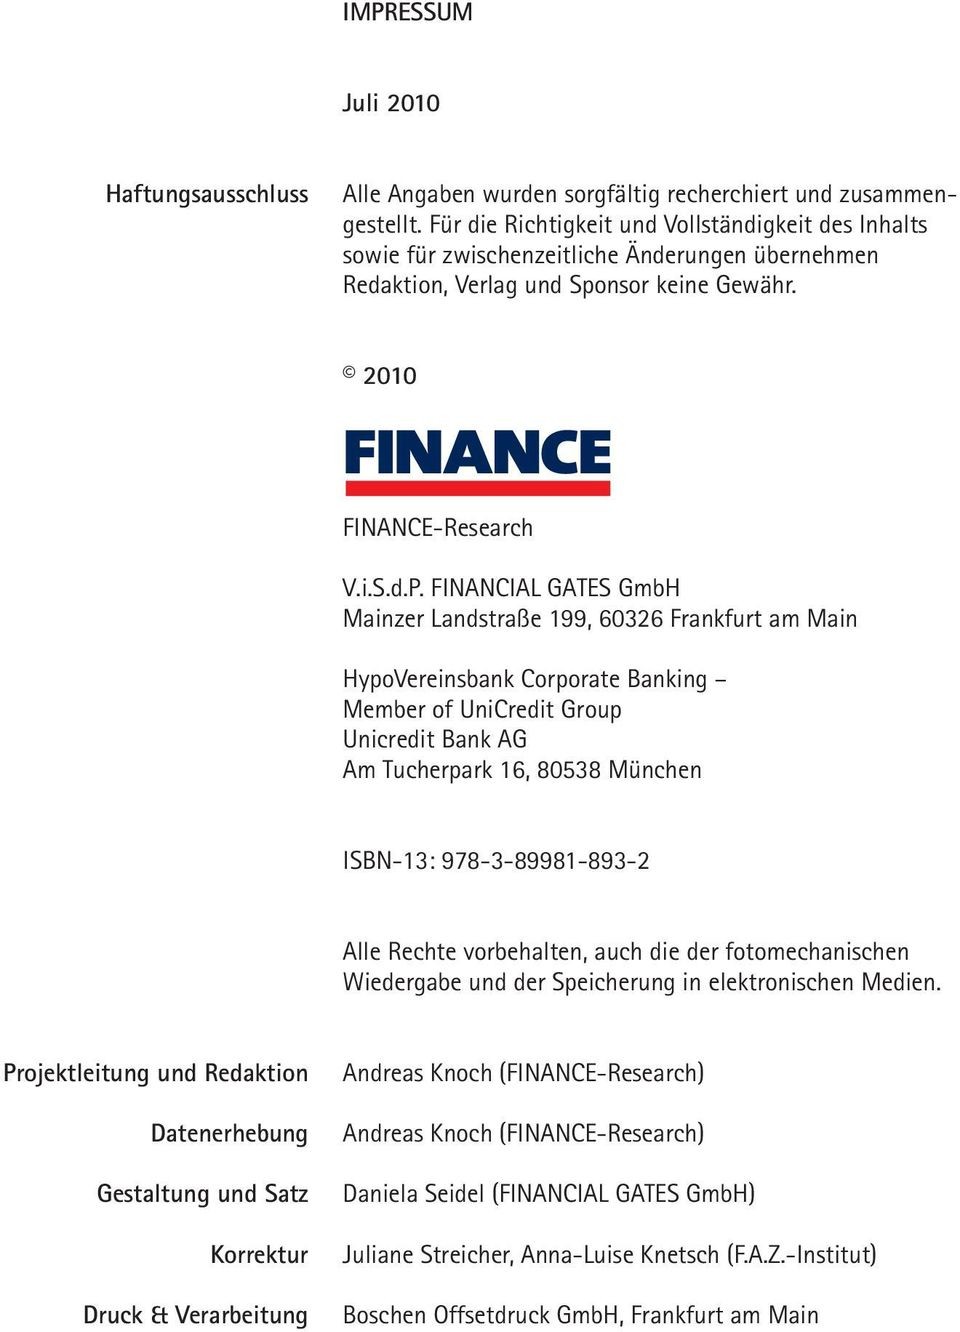 FINANCIAL GATES GmbH Mainzer Landstraße 199, 60326 Frankfurt am Main HypoVereinsbank Corporate Banking Member of UniCredit Group Unicredit Bank AG Am Tucherpark 16, 80538 München ISBN-13: